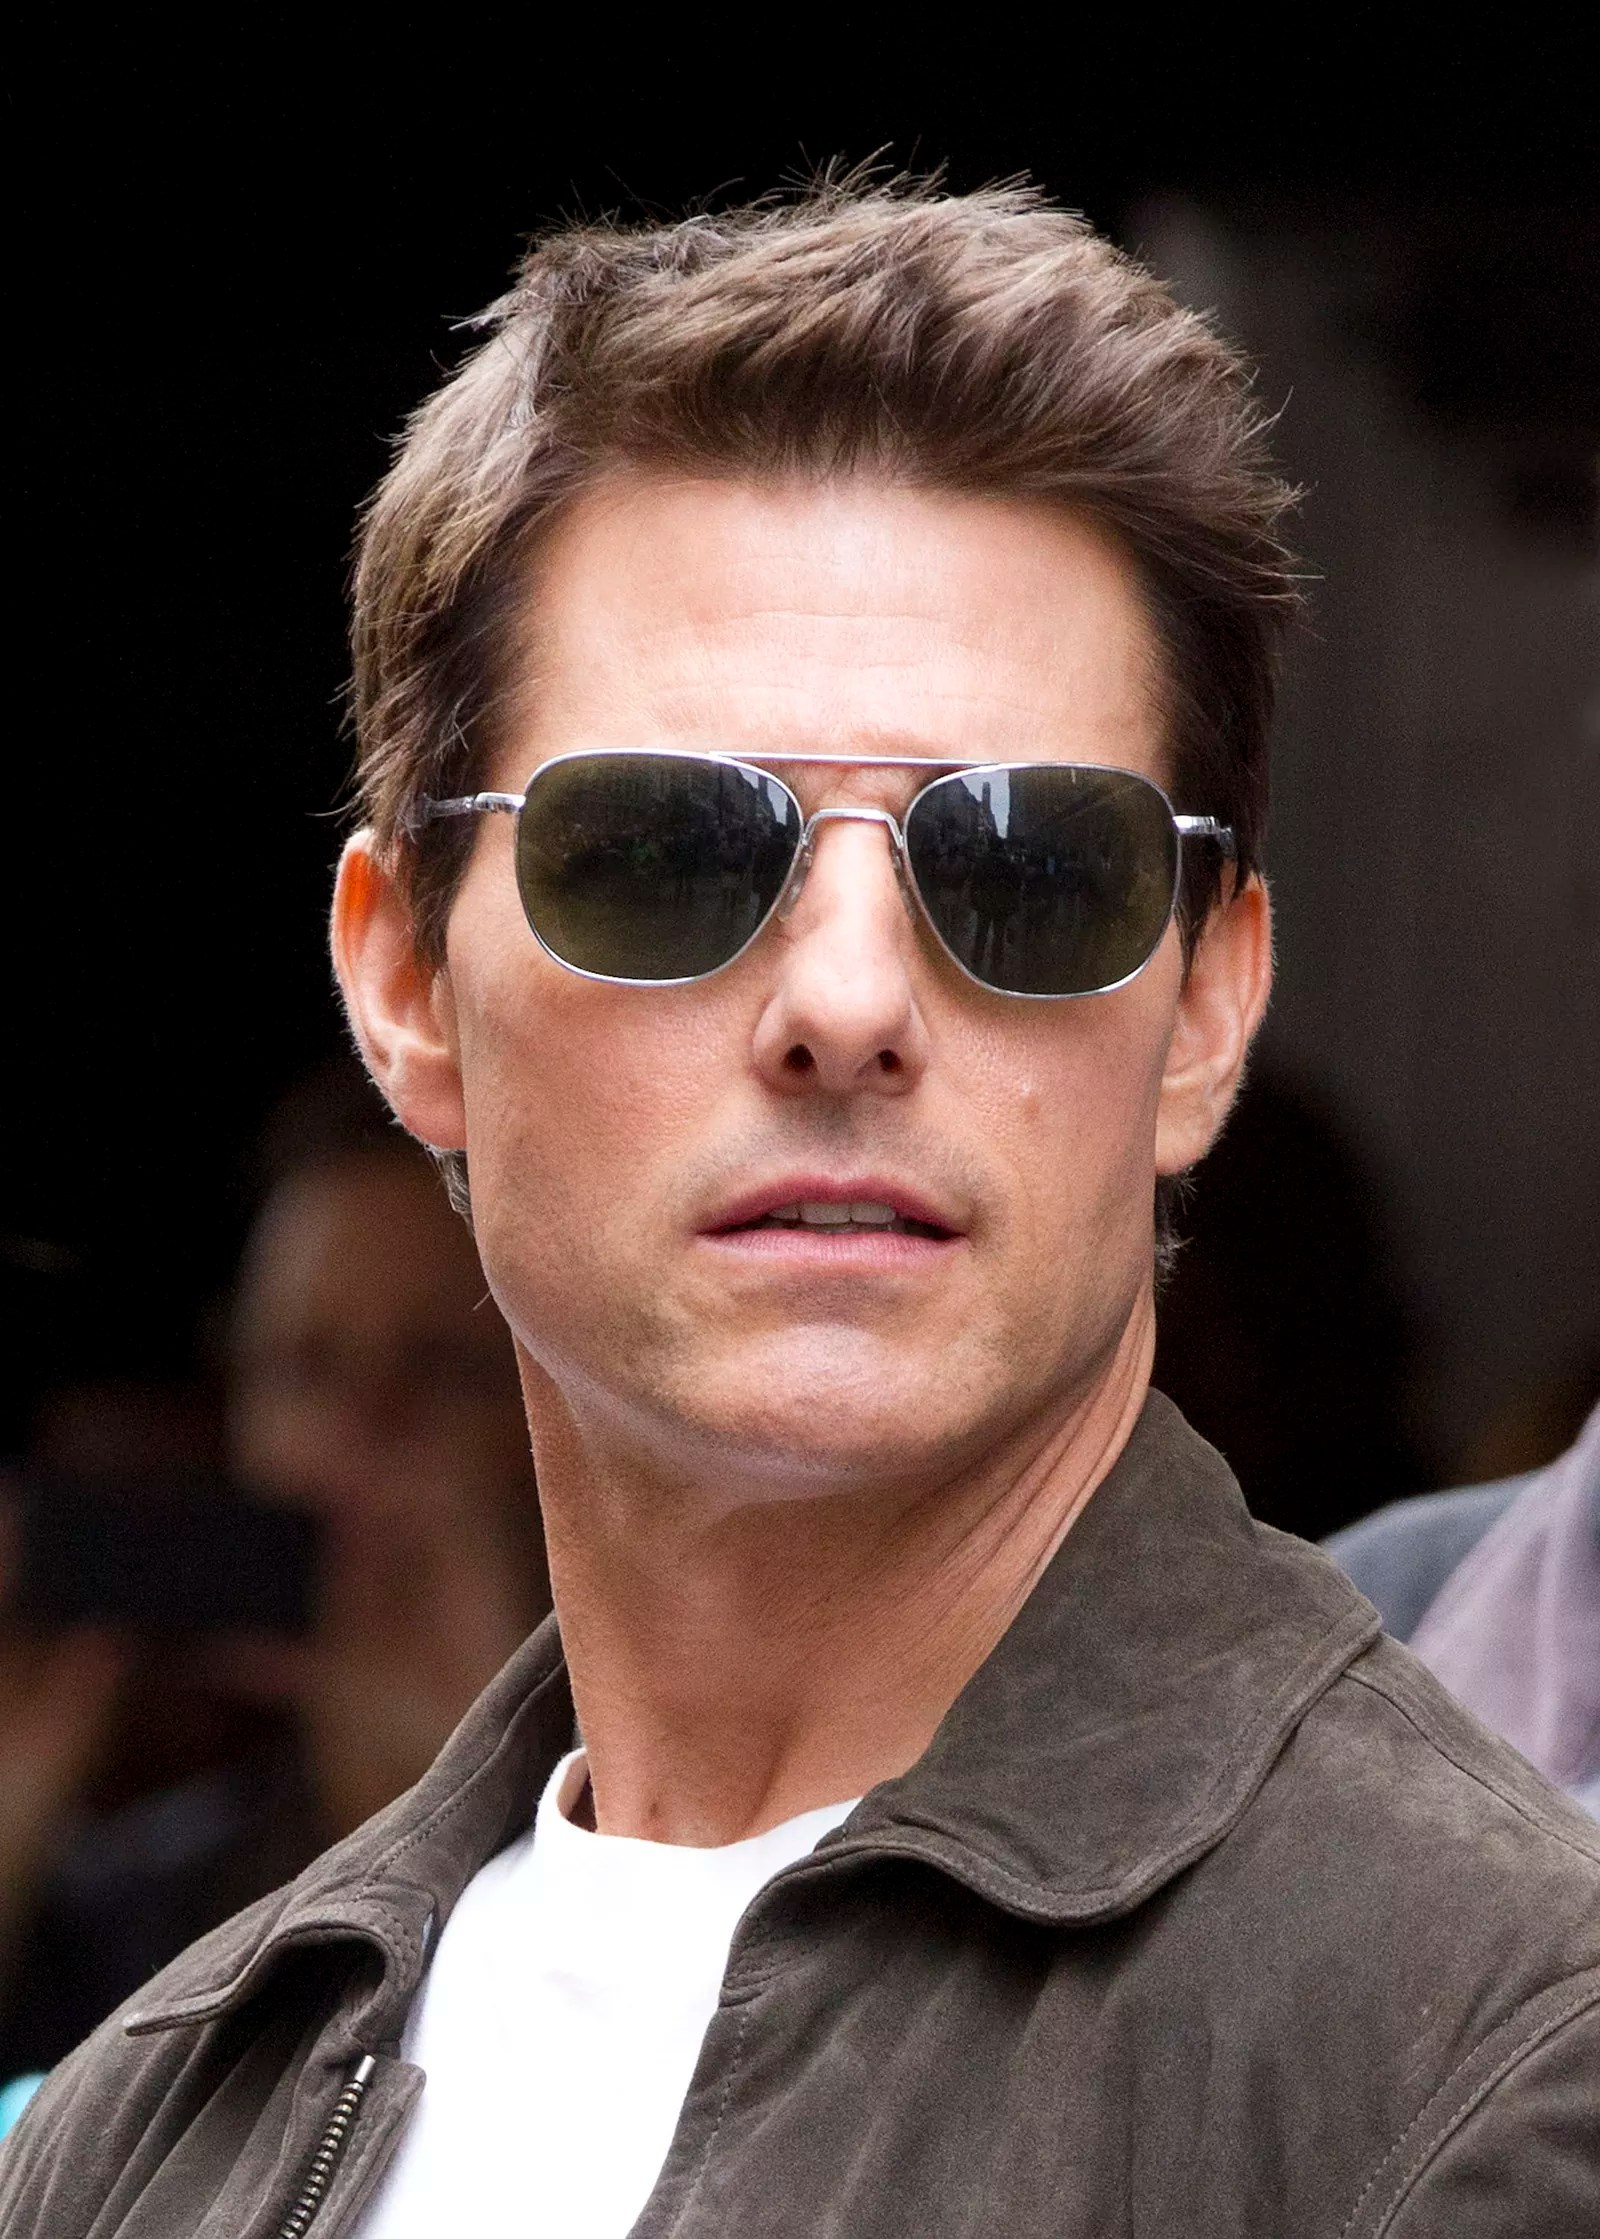 Oblivion Den Of Geek Tom Cruise Hairstyle Oblivion Vincom Us